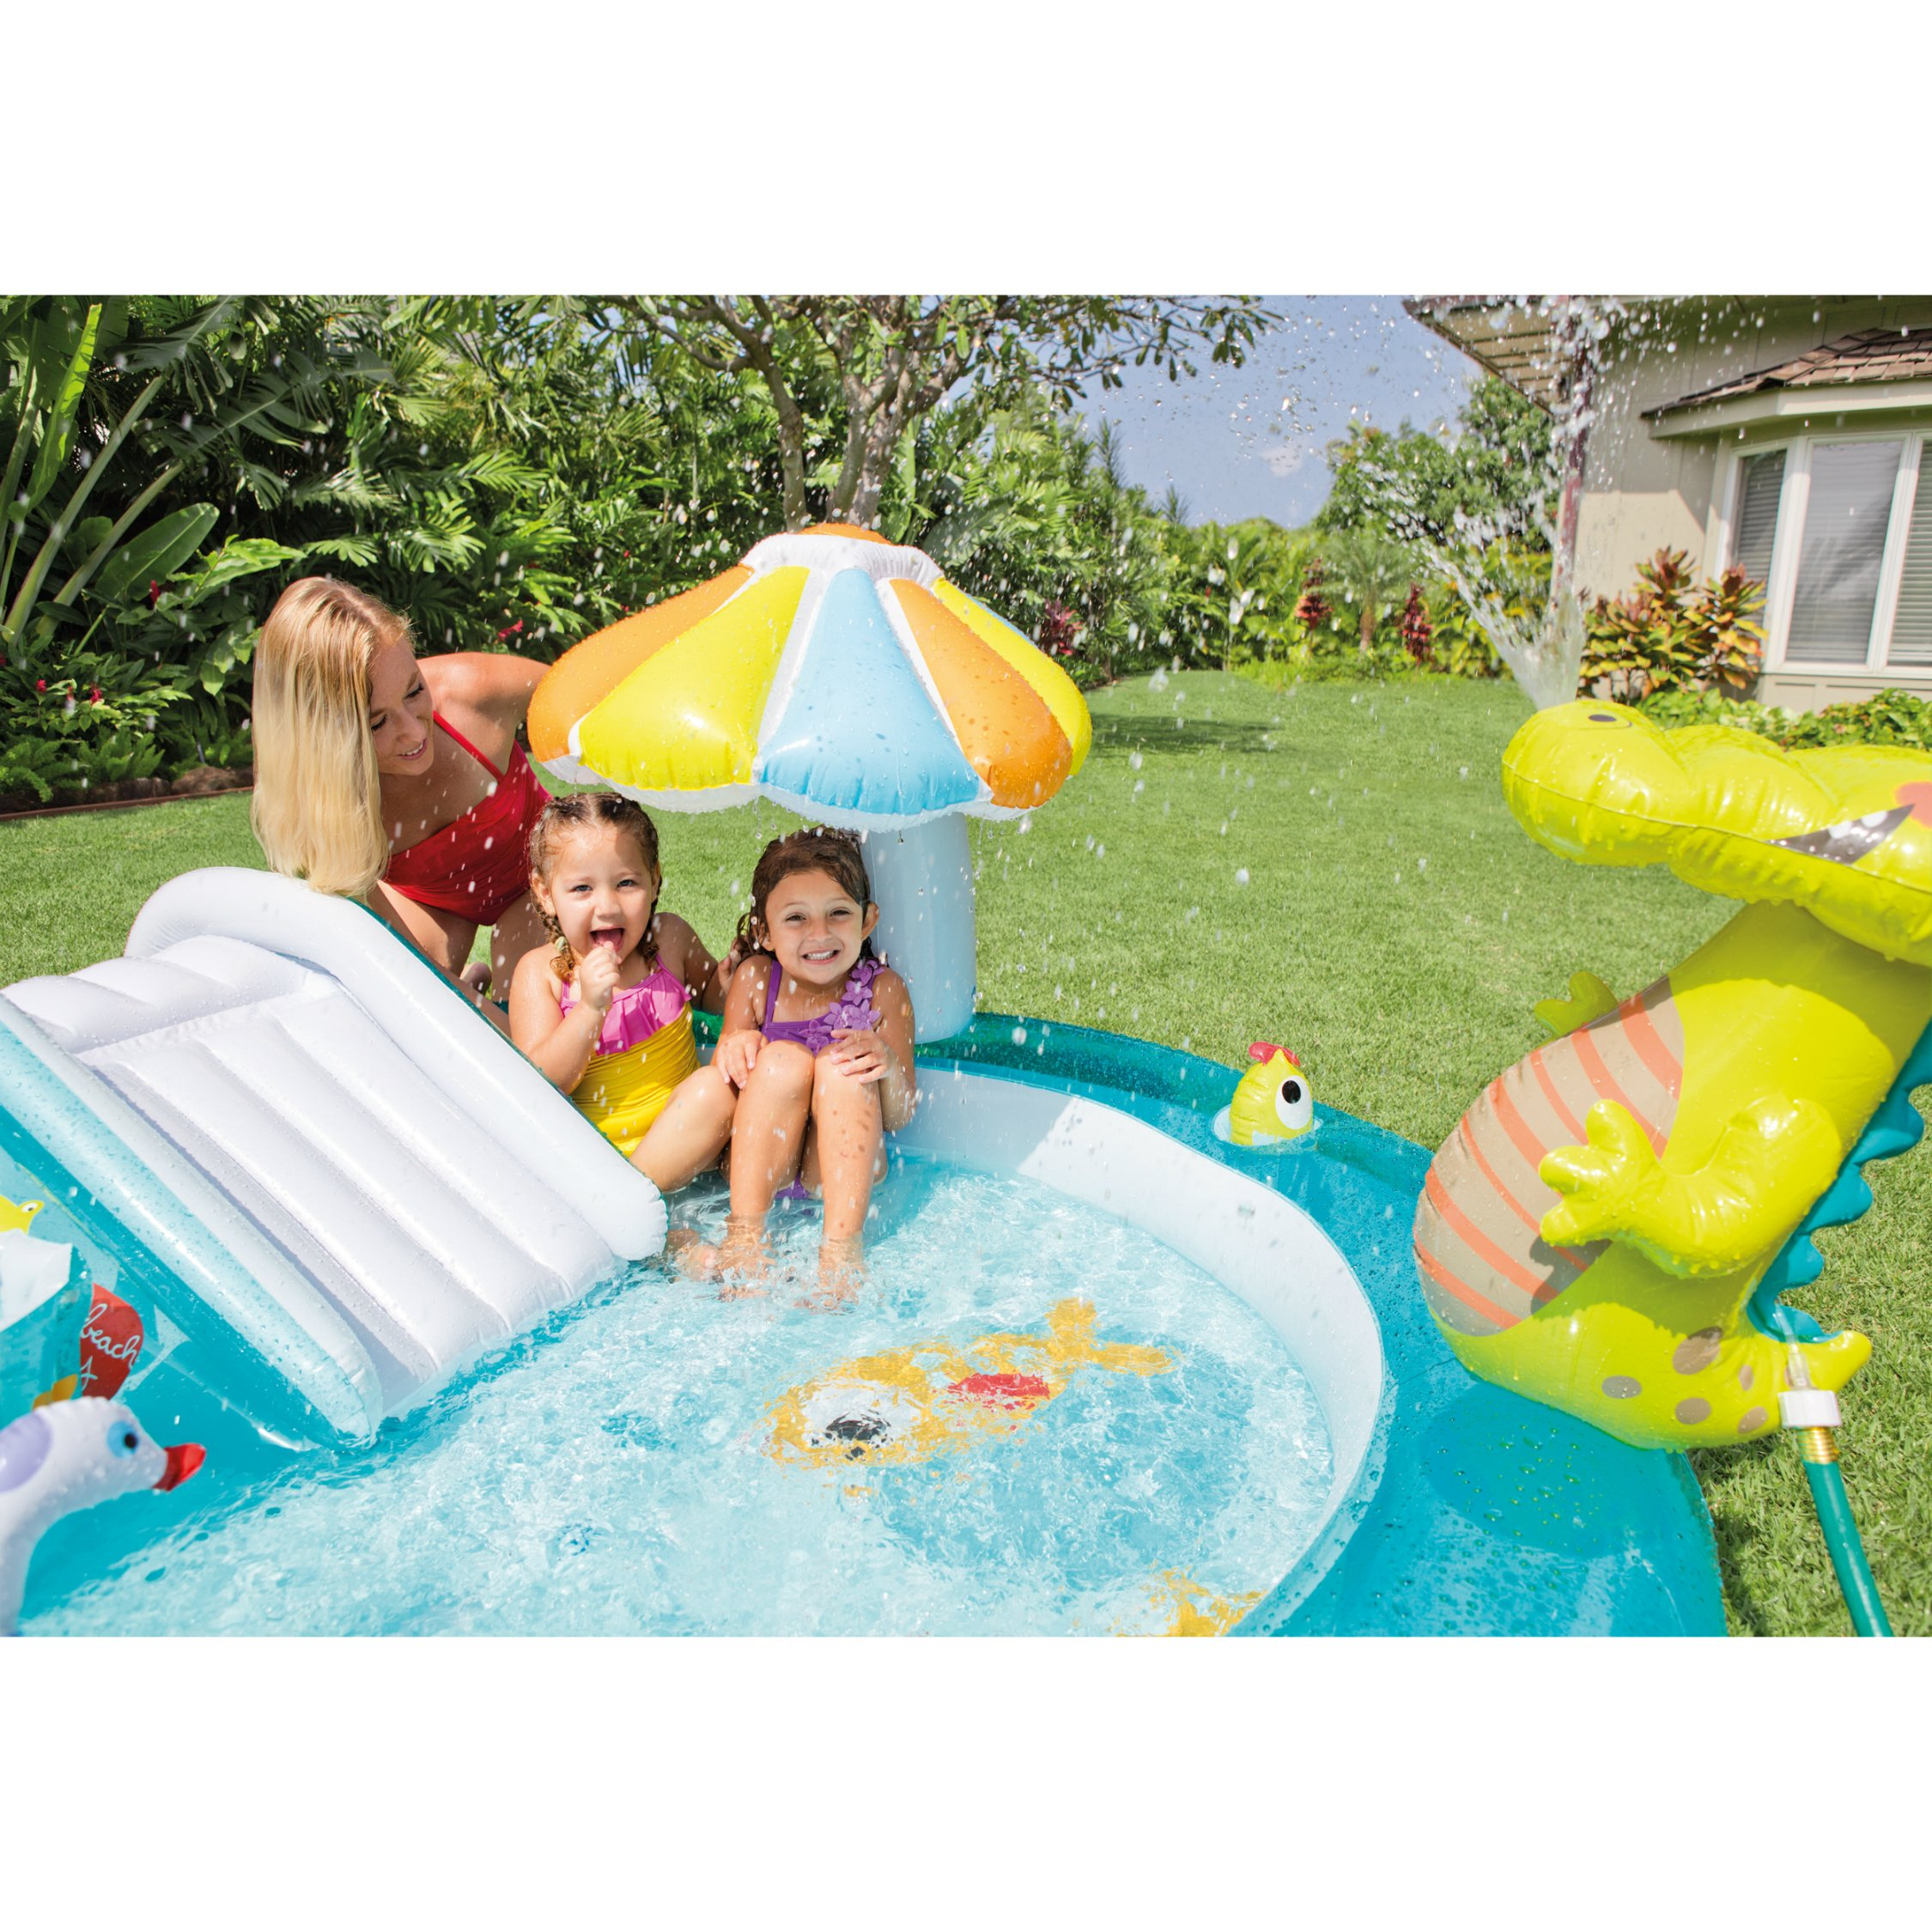 Intex Gator Inflatable Play Center, 80'' X 68'' X 35'', for Ages 2+ by Intex (Image #3)